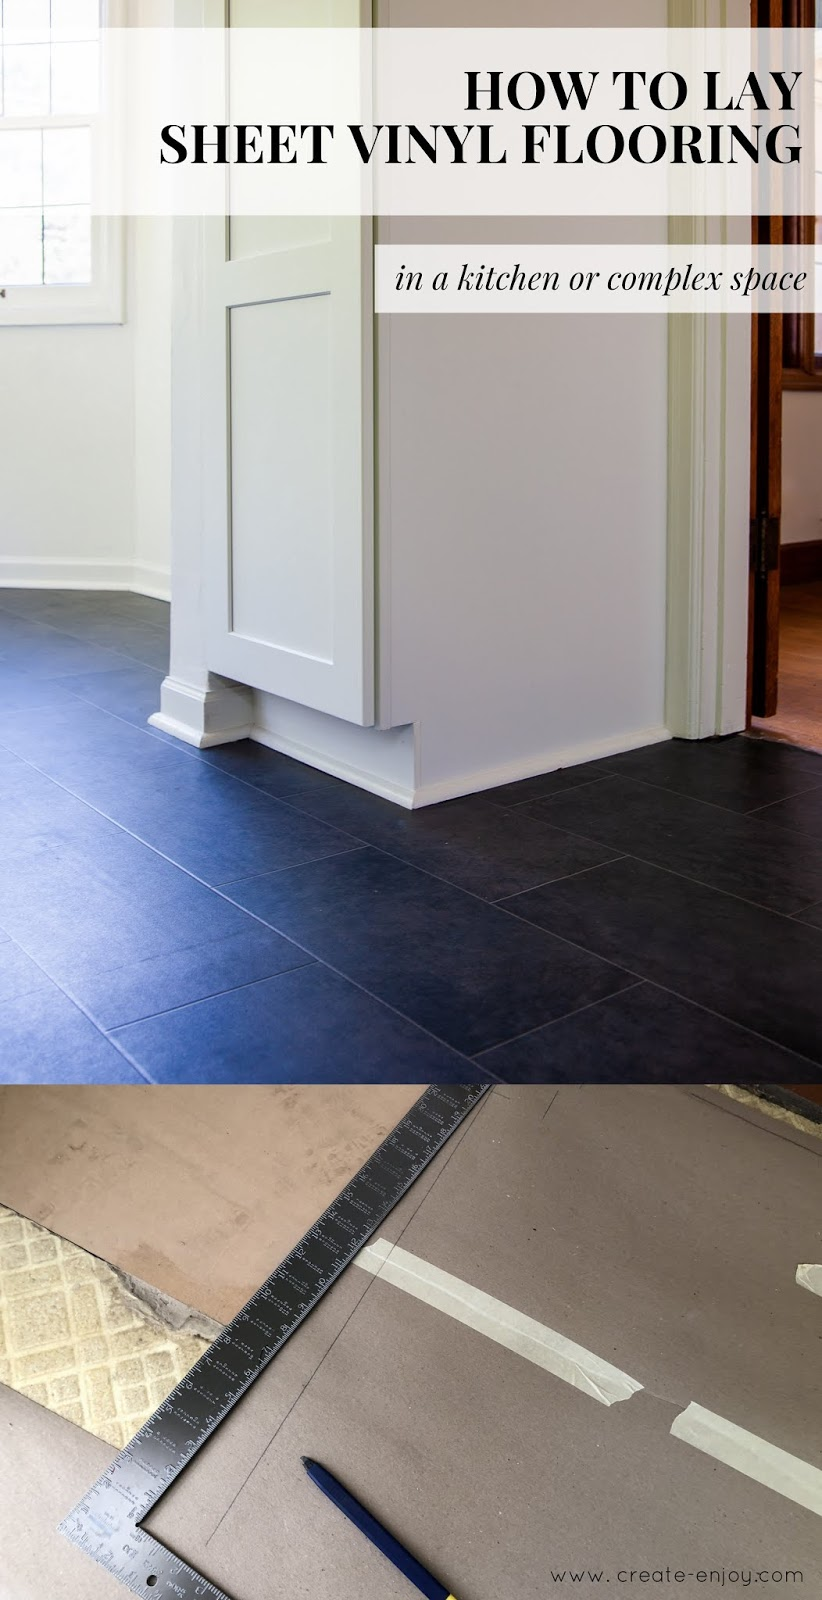 Linoleum Für Bad How To Lay Sheet Vinyl Flooring In A Complex, Larger Space. Our Diy Kitchen Reno Slate-look Vinyl / Create / Enjoy